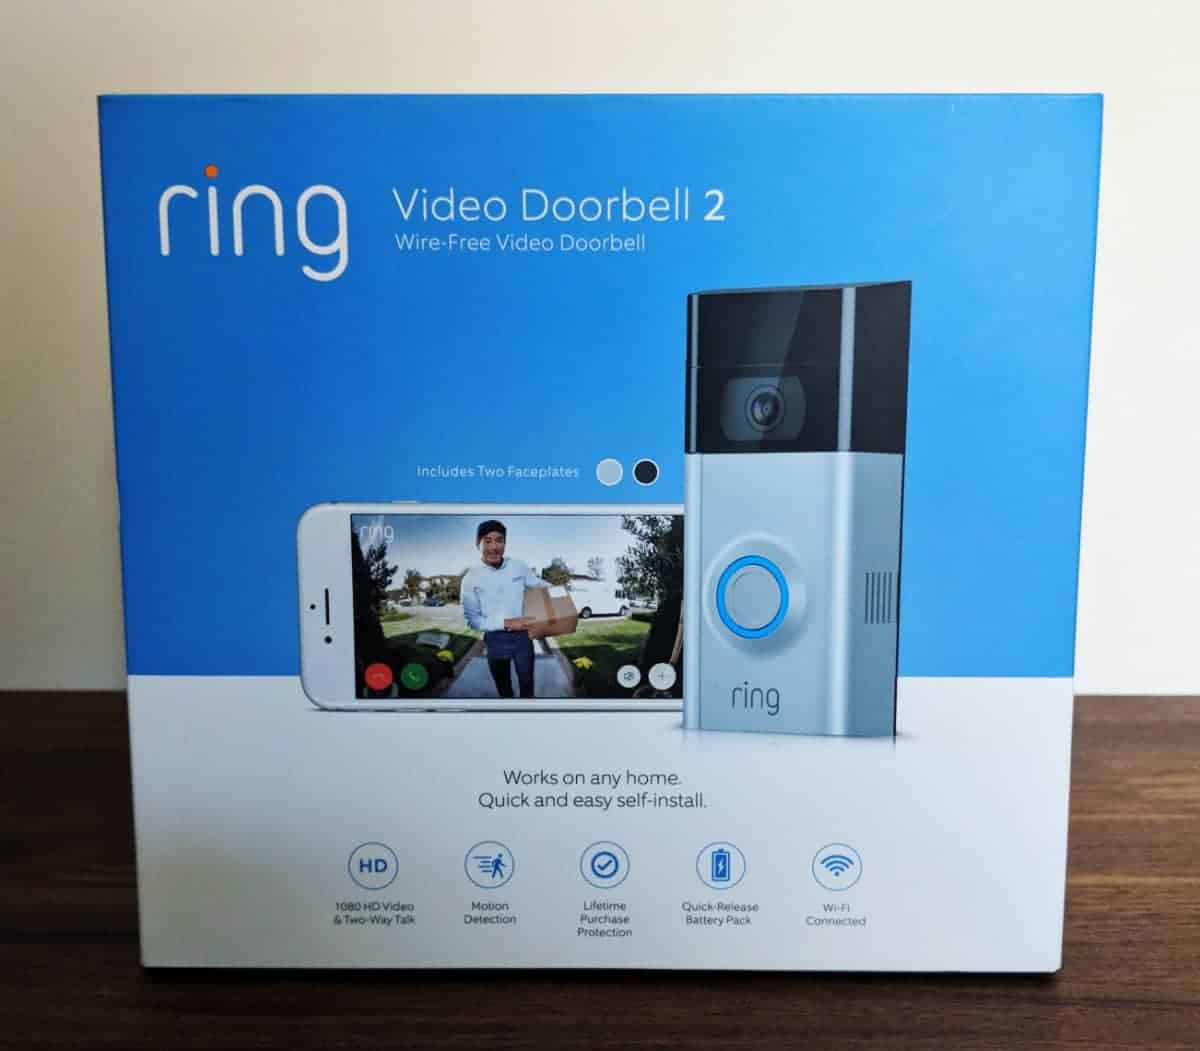 Ring Video Doorbell 2 Review - The Streaming Blog